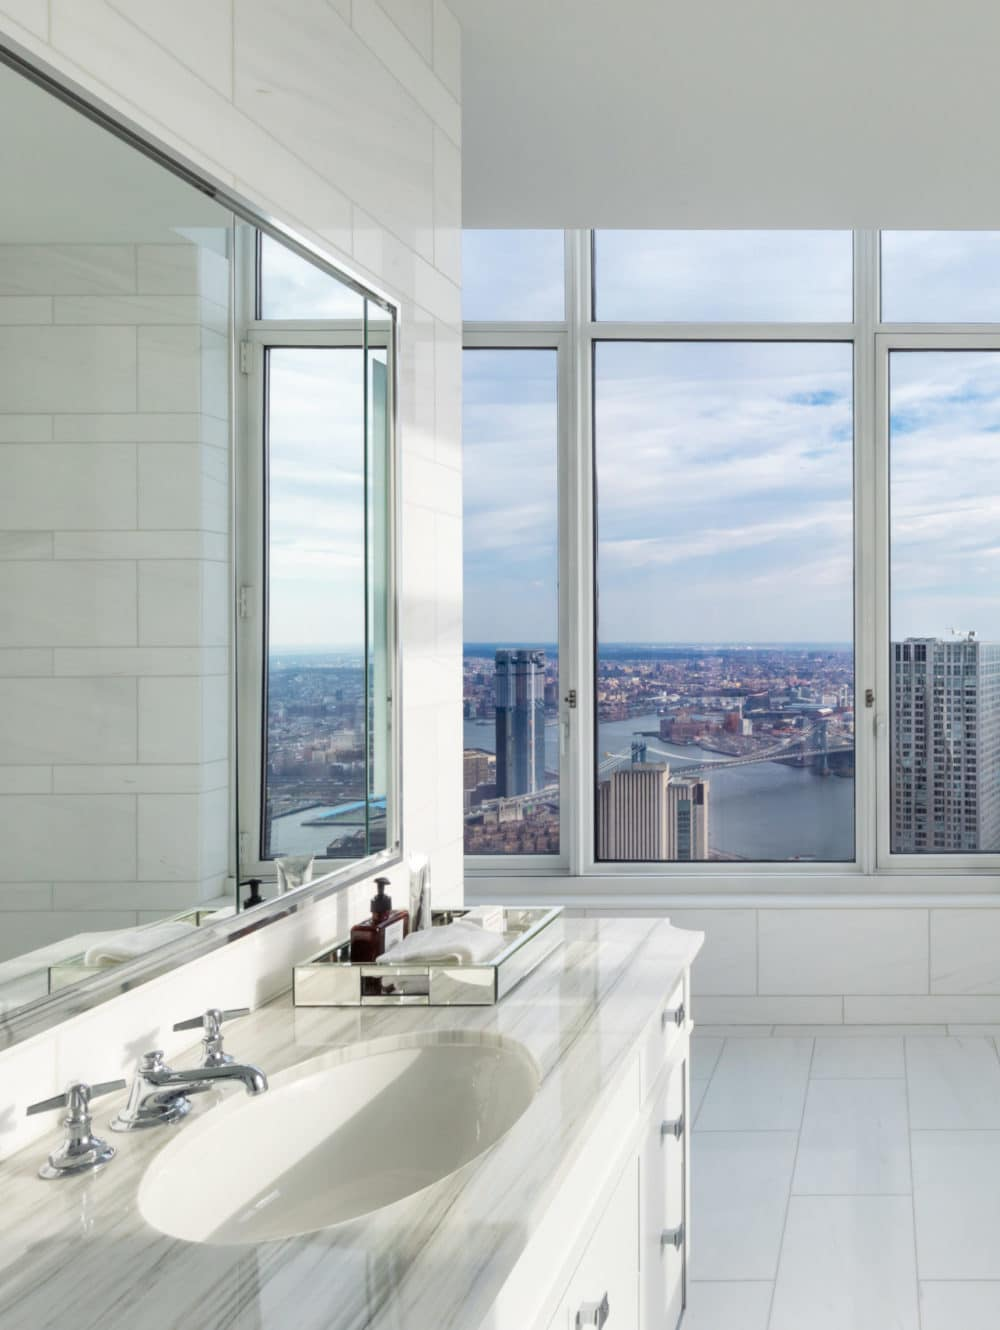 Interior view of white bathroom in 30 Park Place with window view of New York City. Includes bathtub and sink area.